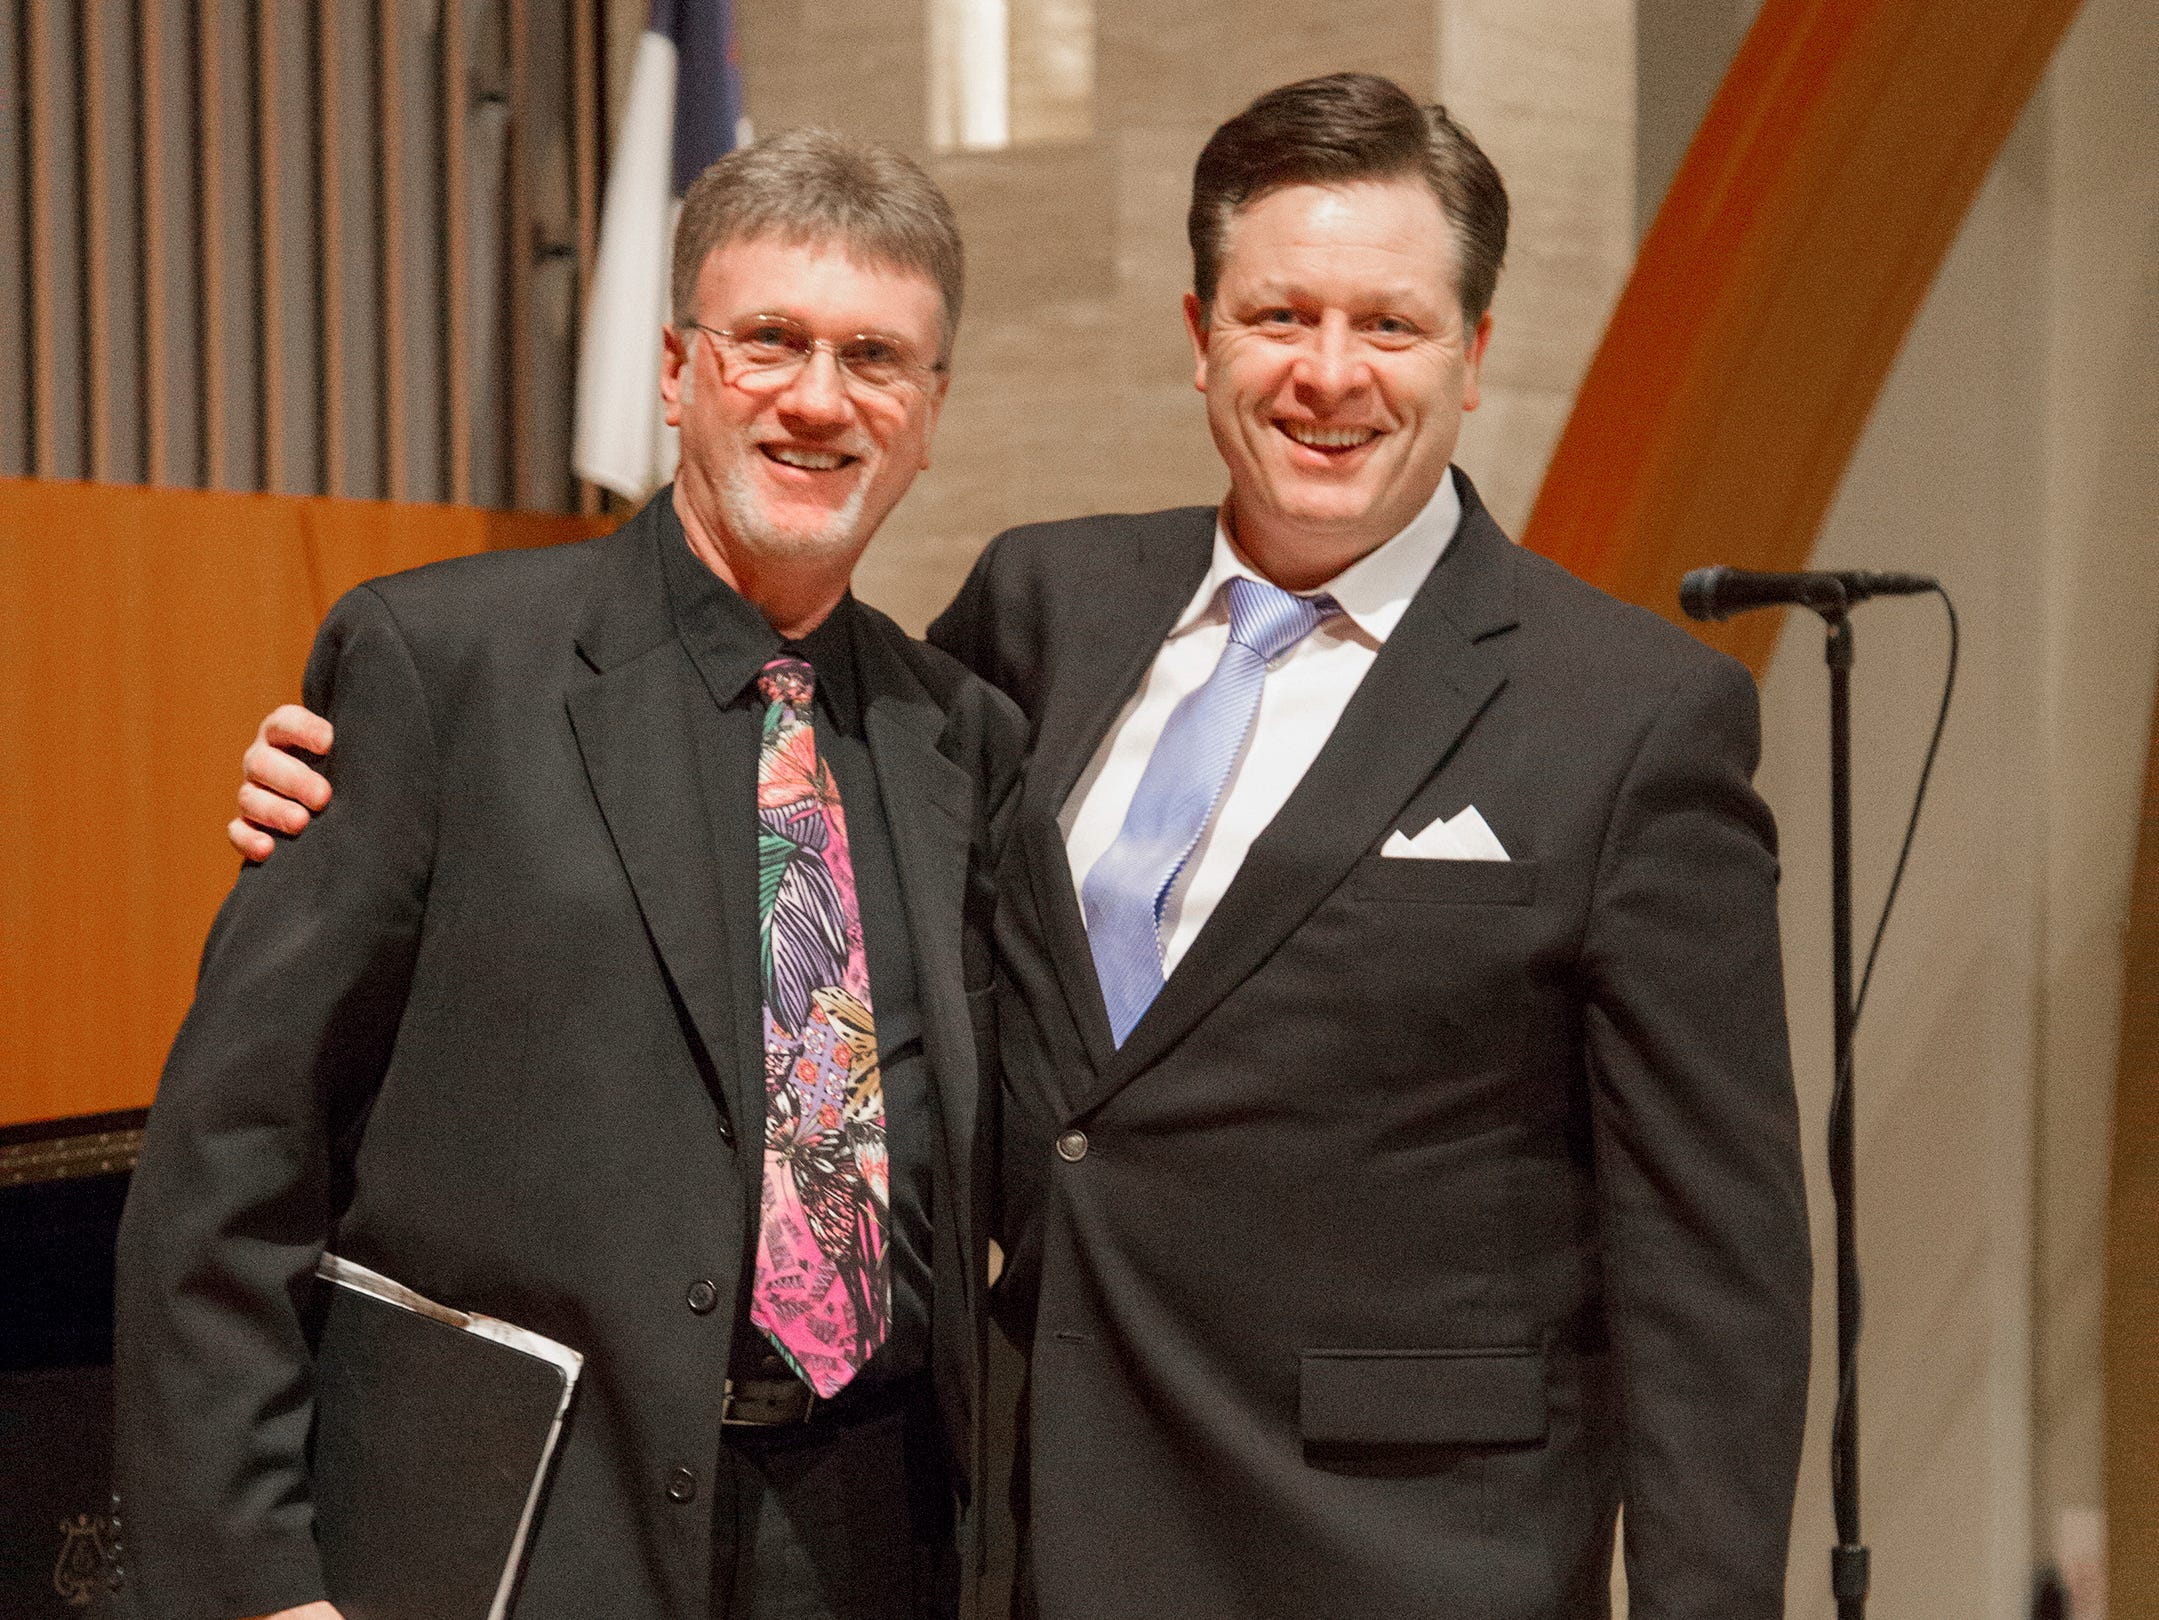 David George and Anthony Kearns. Anthony Kearns benefit concert to benefit Julia's Butterfly Foundation at West Side Presbyterian Church in Ridgewood. 3/23/2019